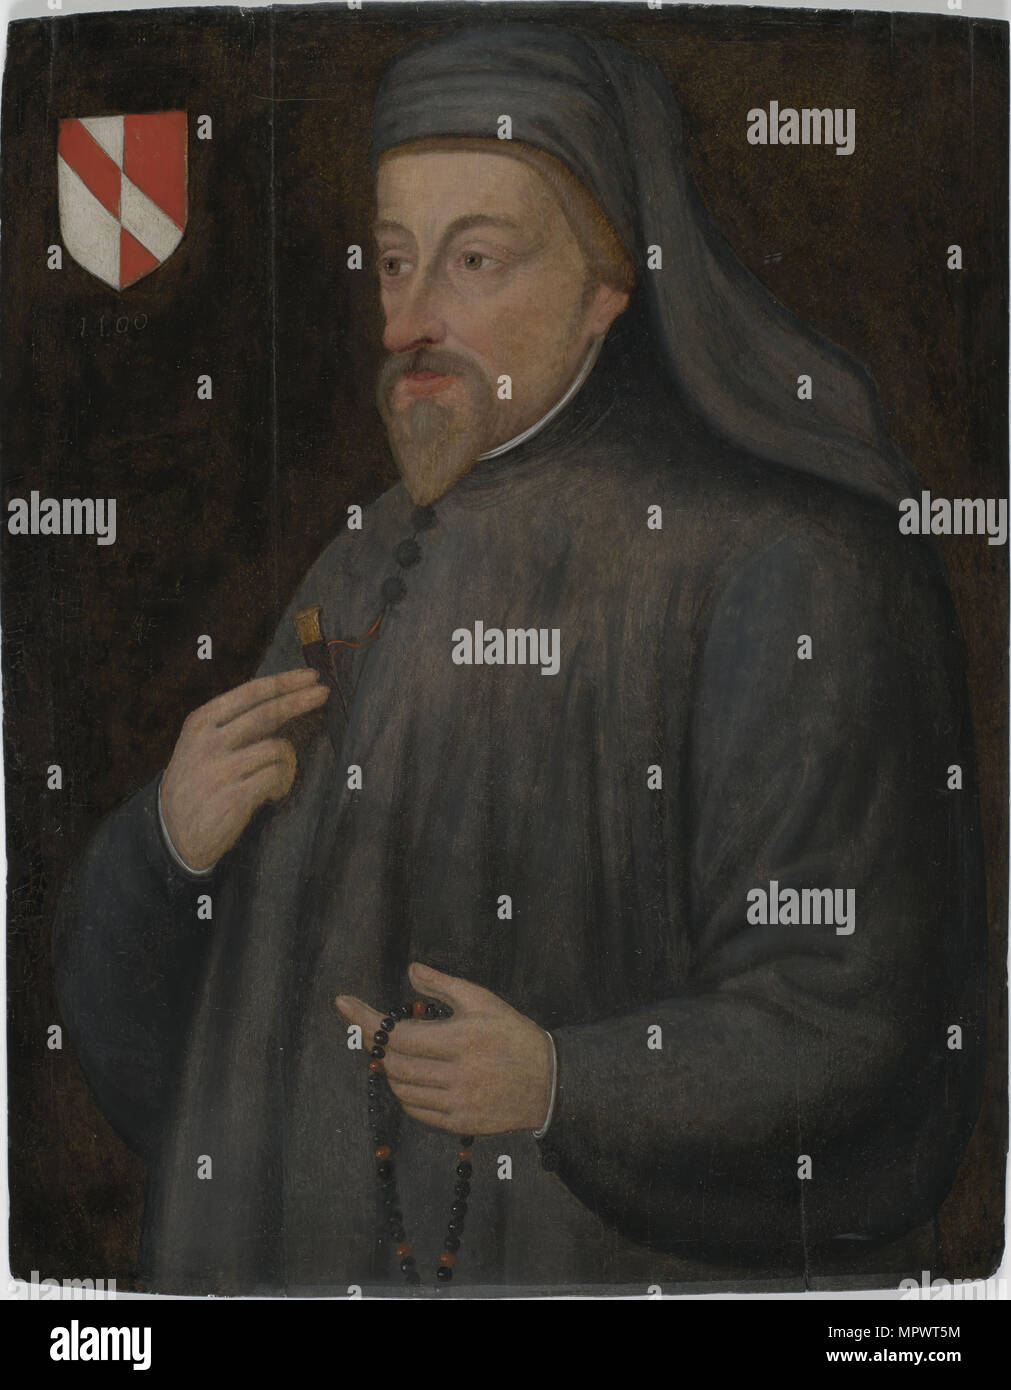 Portrait of Geoffrey Chaucer, Early 17th cen.. Stock Photo